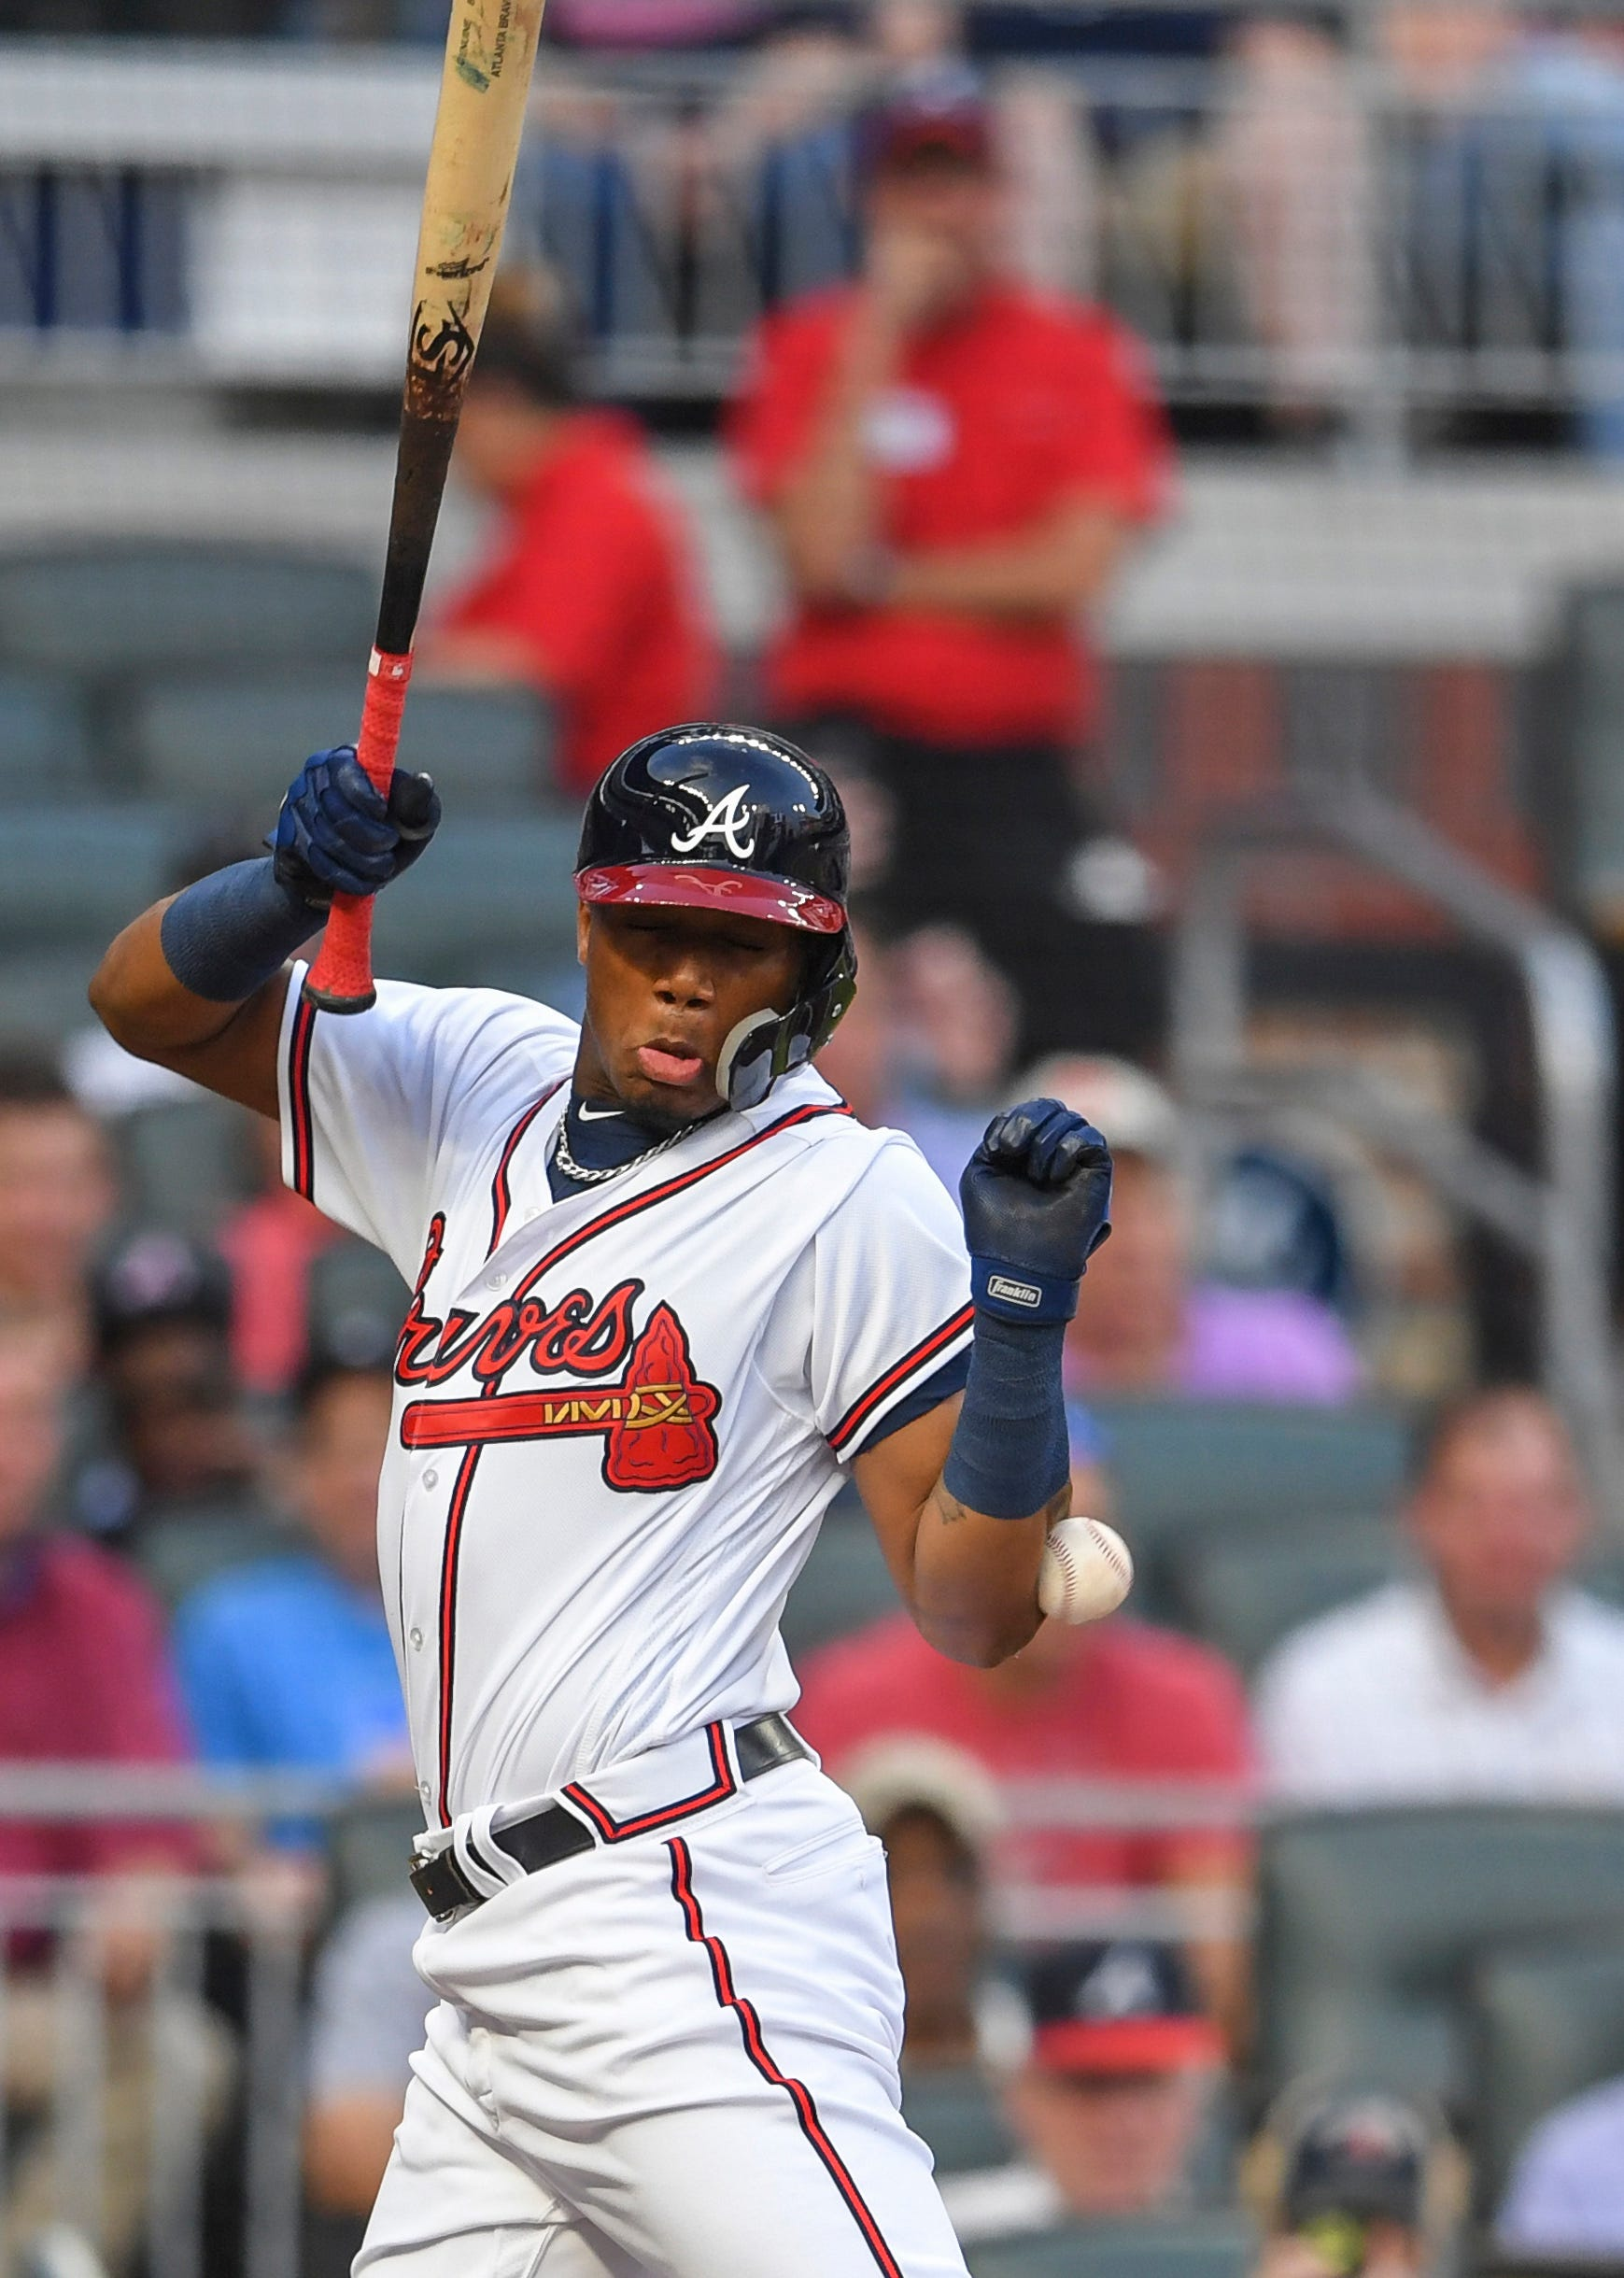 No rule - written or unwritten - excuses Jose Ureña's 'purpose' pitch to Ronald Acuña Jr.